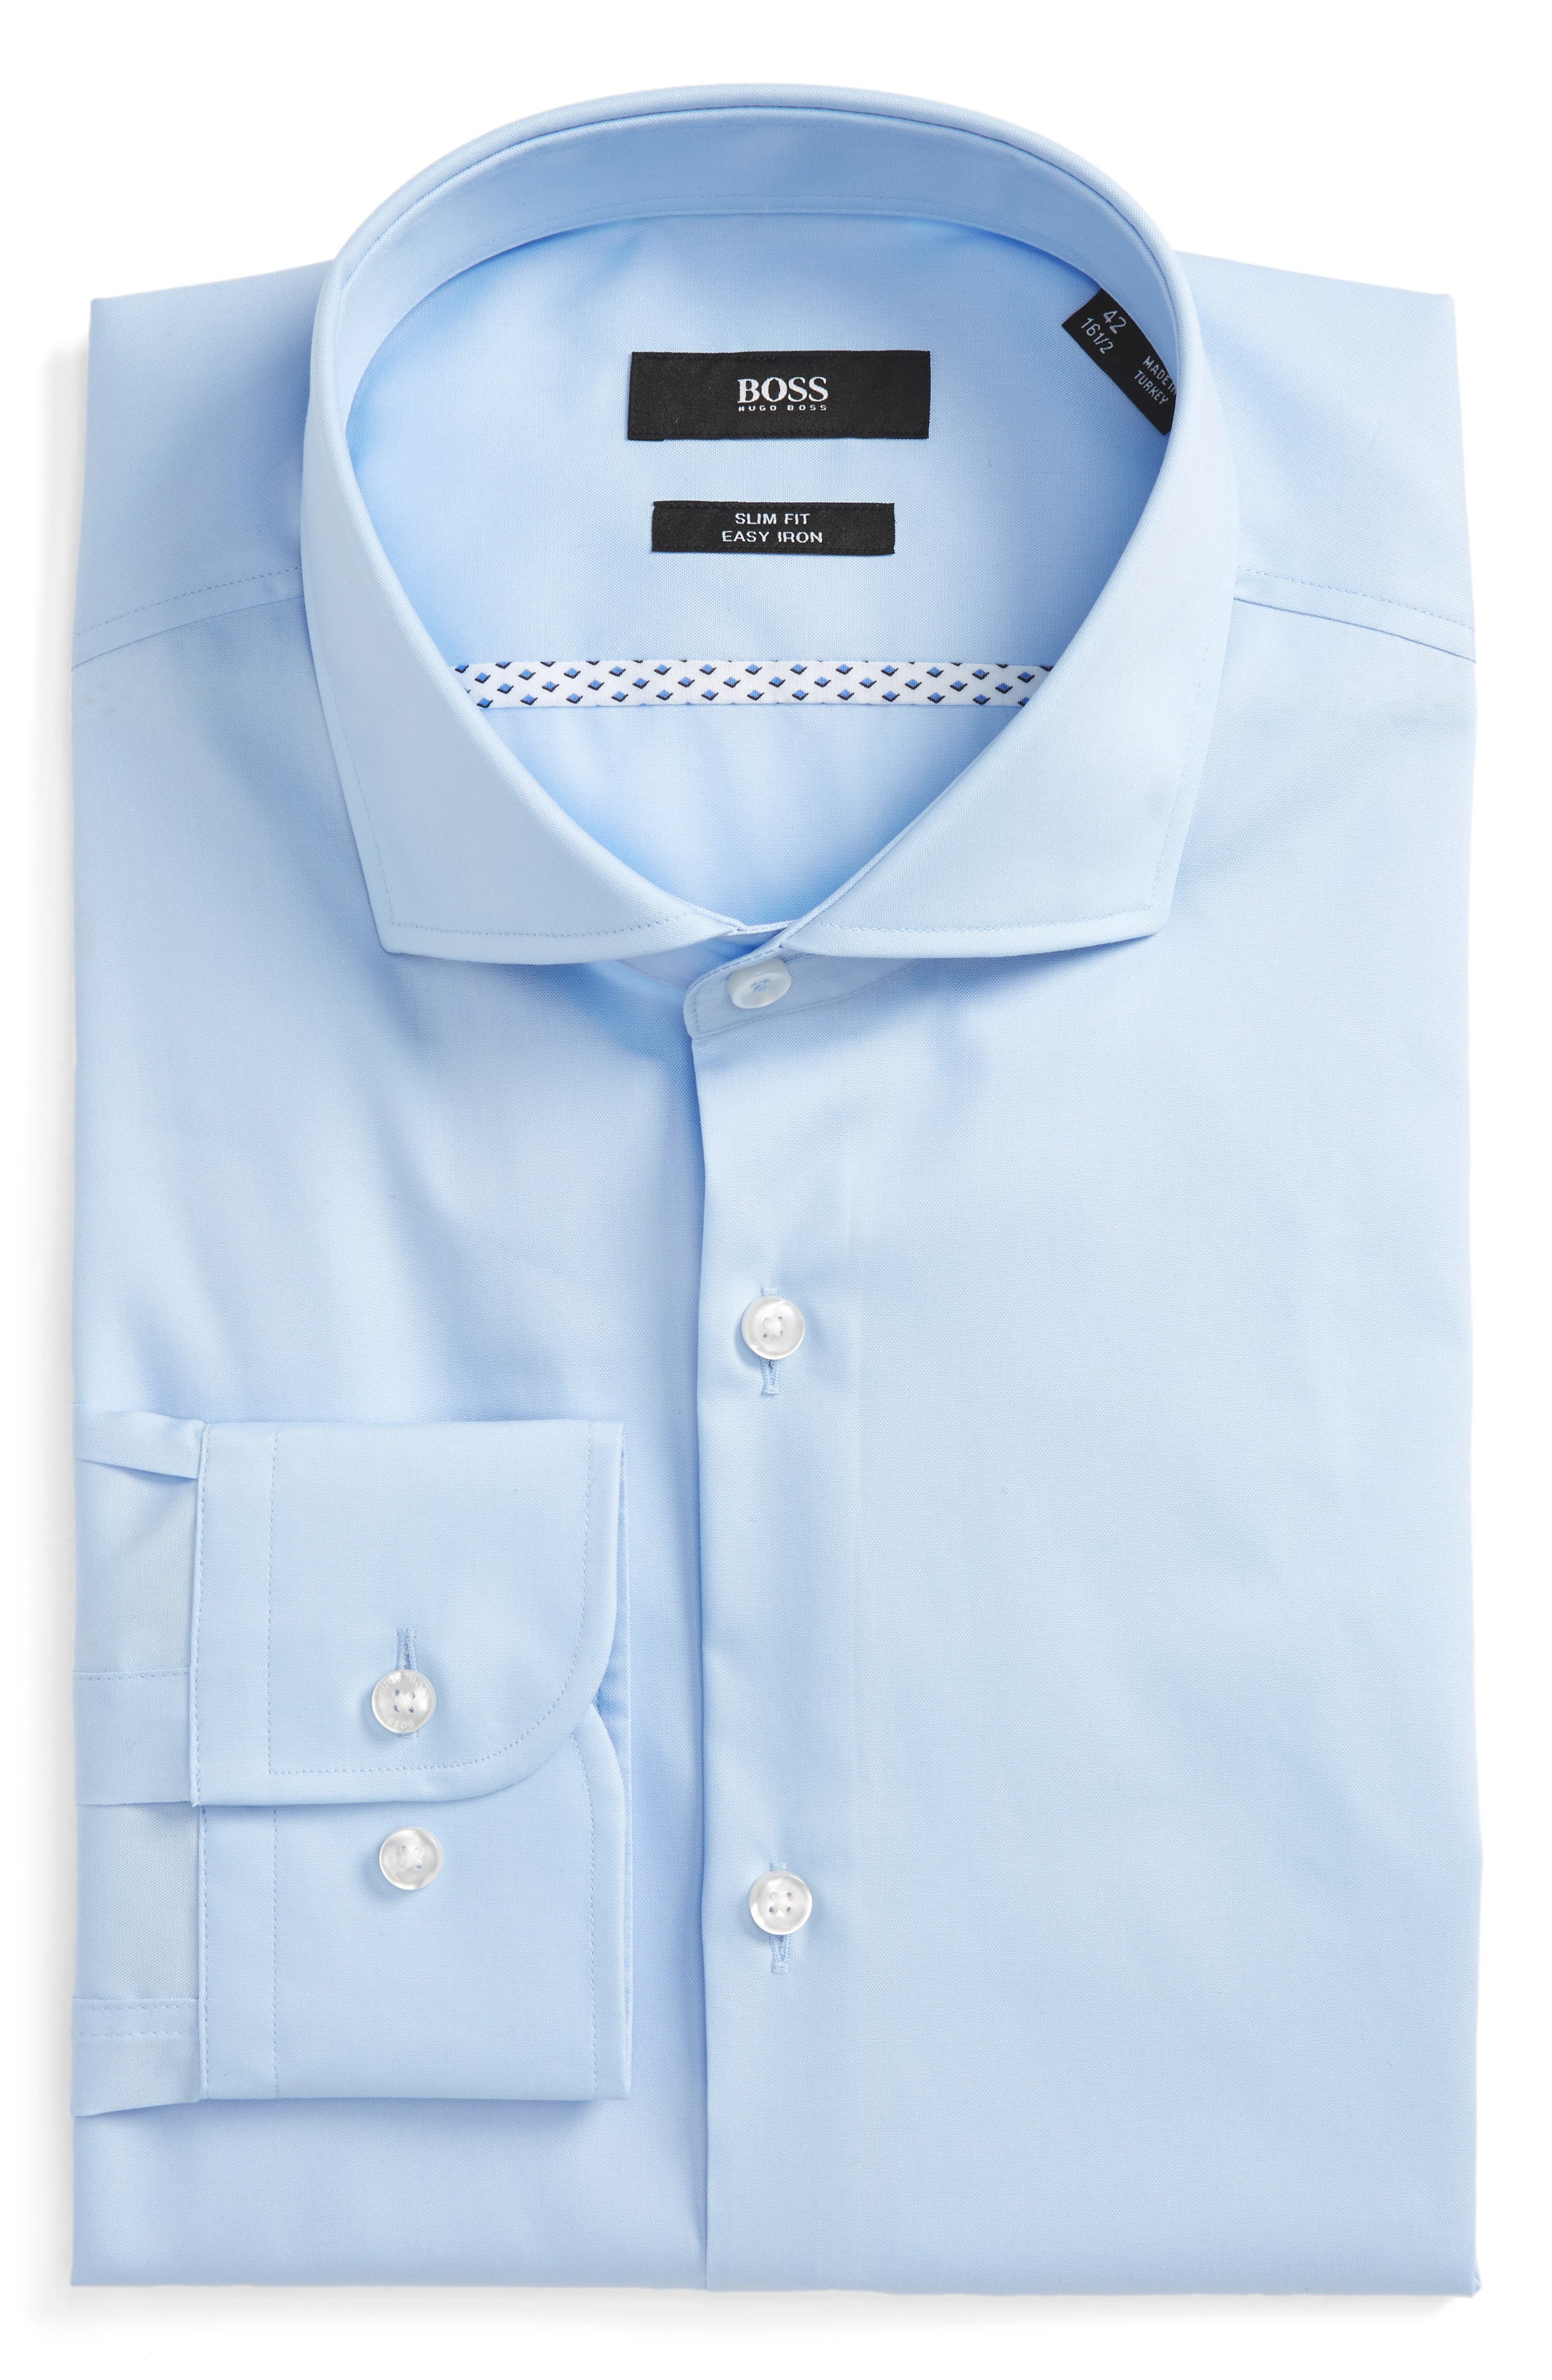 Alternate Image 1 Selected - BOSS Slim Fit Easy Iron Solid Dress Shirt